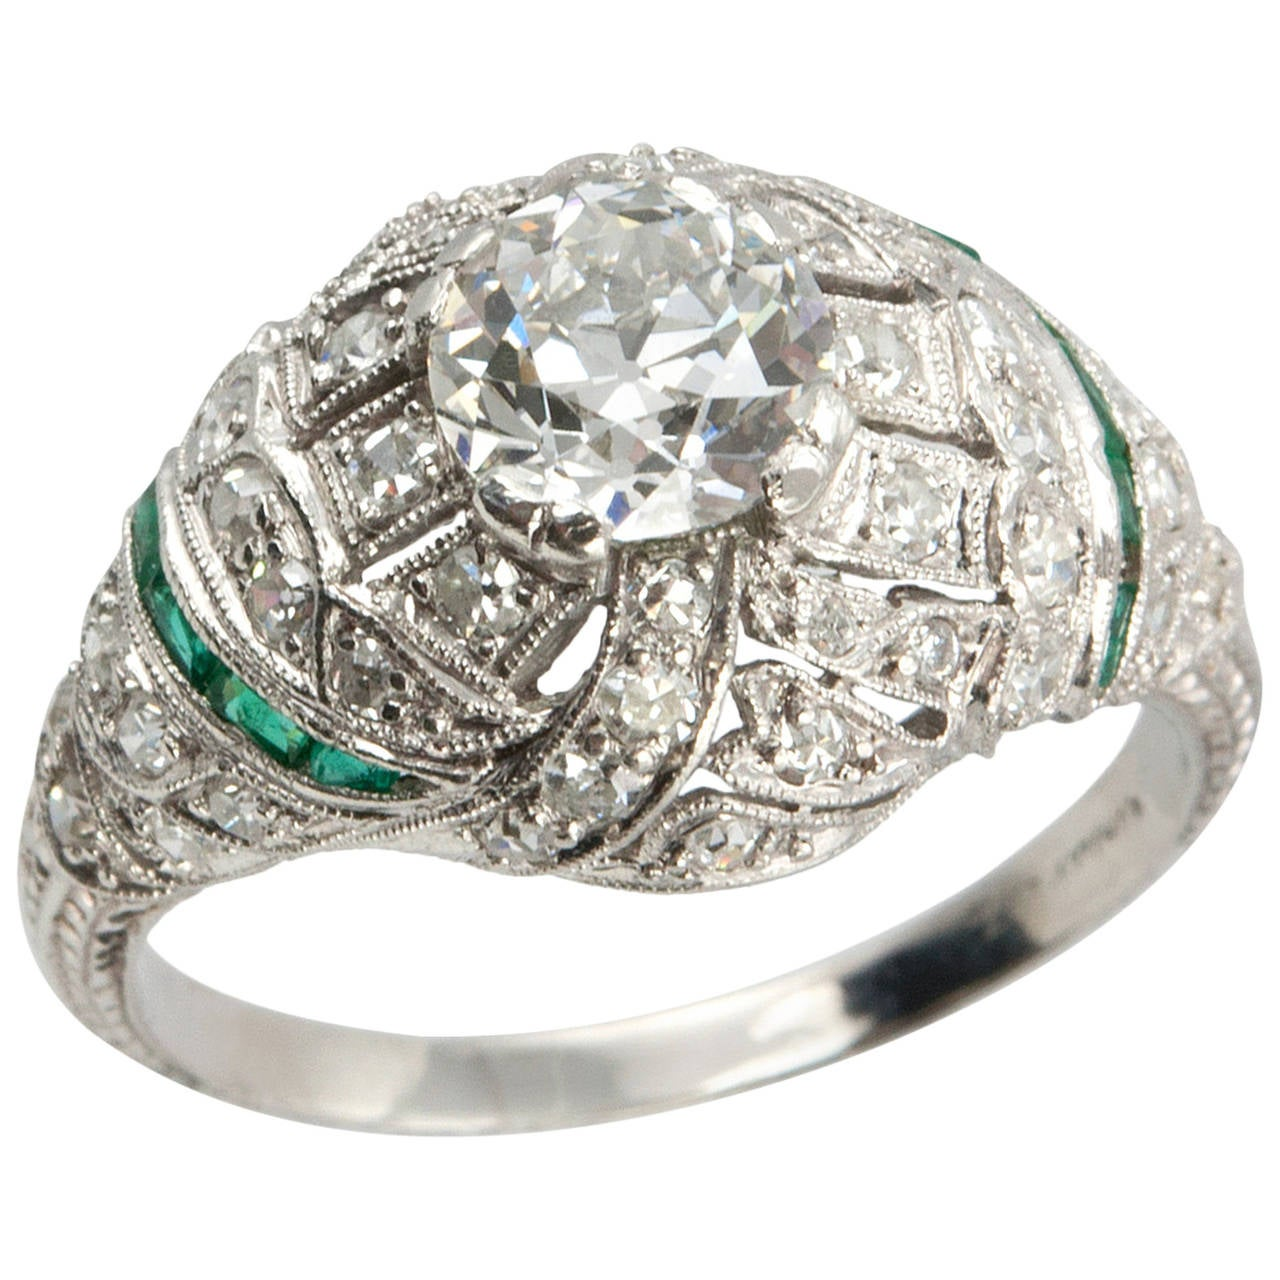 0 92 Carat Old European Cut Diamond Engagement Ring with Emerald Accents For